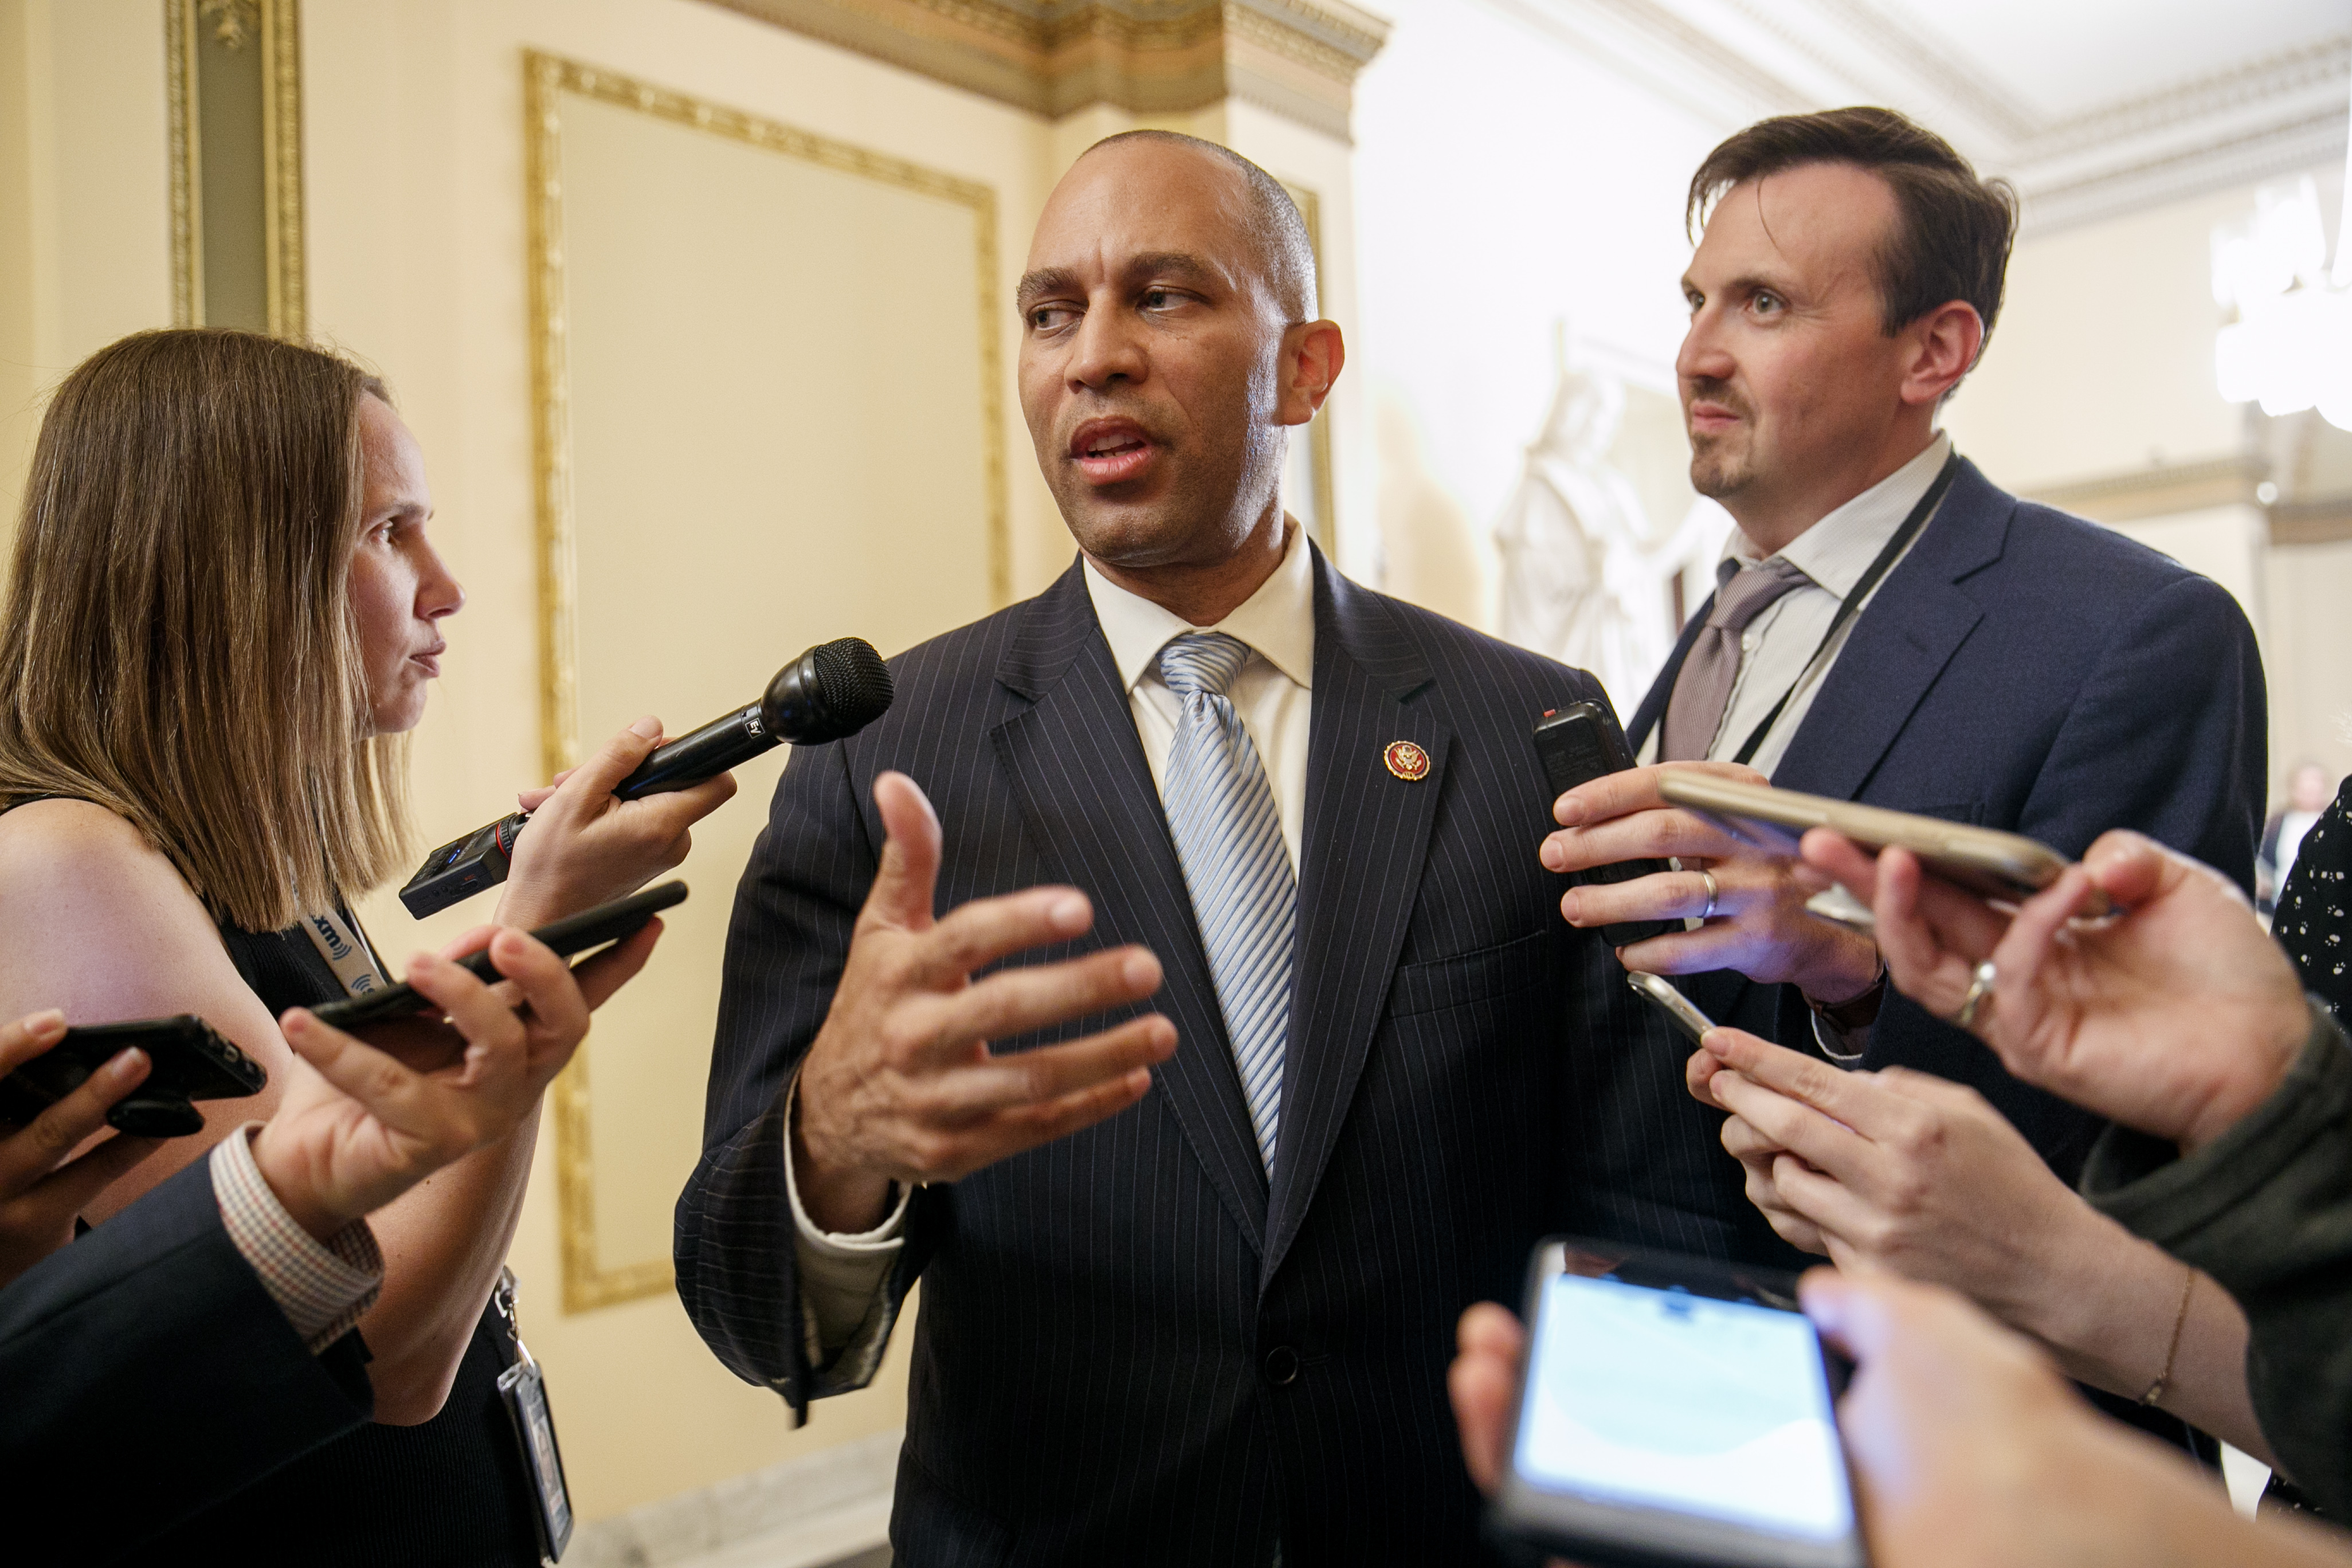 New Democratic Caucus Chairman Hakeem Jeffries toes line on Trump impeachment: 'Follow the facts'